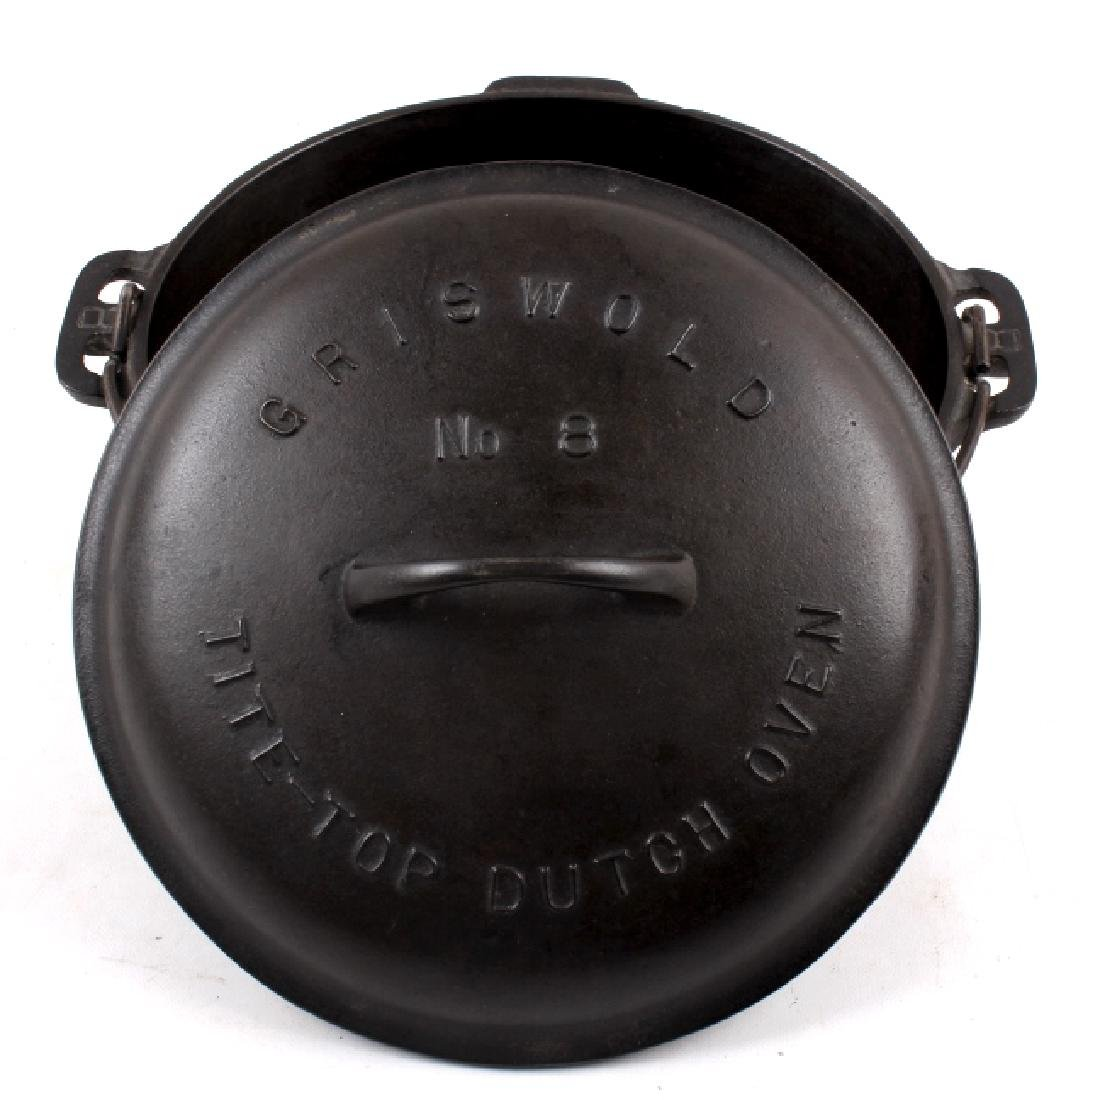 Griswold No. 8 Cast Iron Tite-Top Dutch Oven - 2